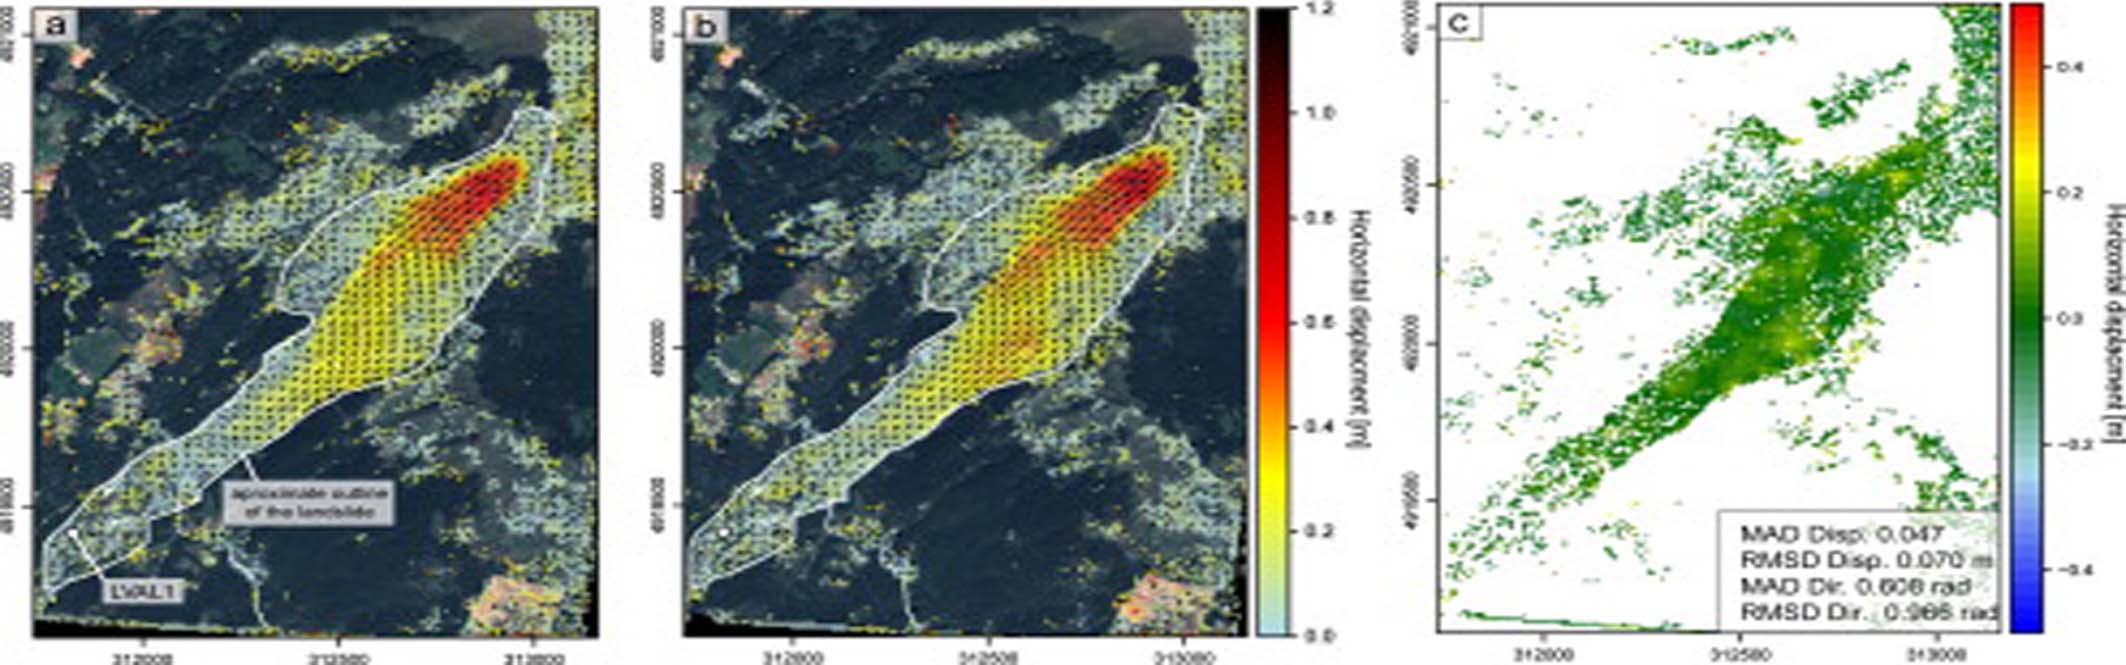 Super-Sauze landslide: quantification of surface displacements by correlation of optical satellite imagery